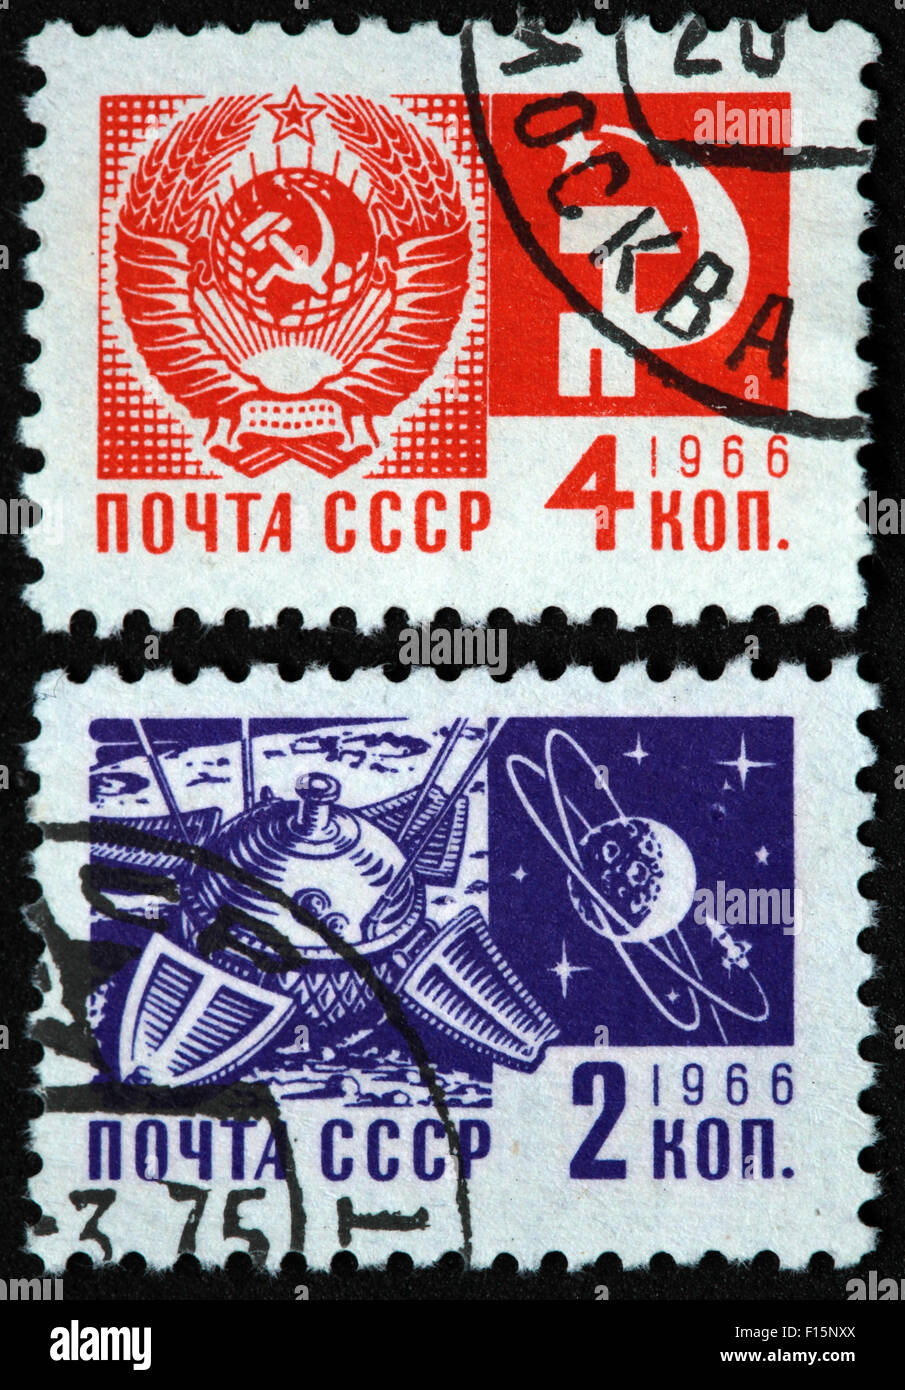 4 and 2 Kon Kopek  Mockba 1966 CCCP  USSR space stamps Stock Photo